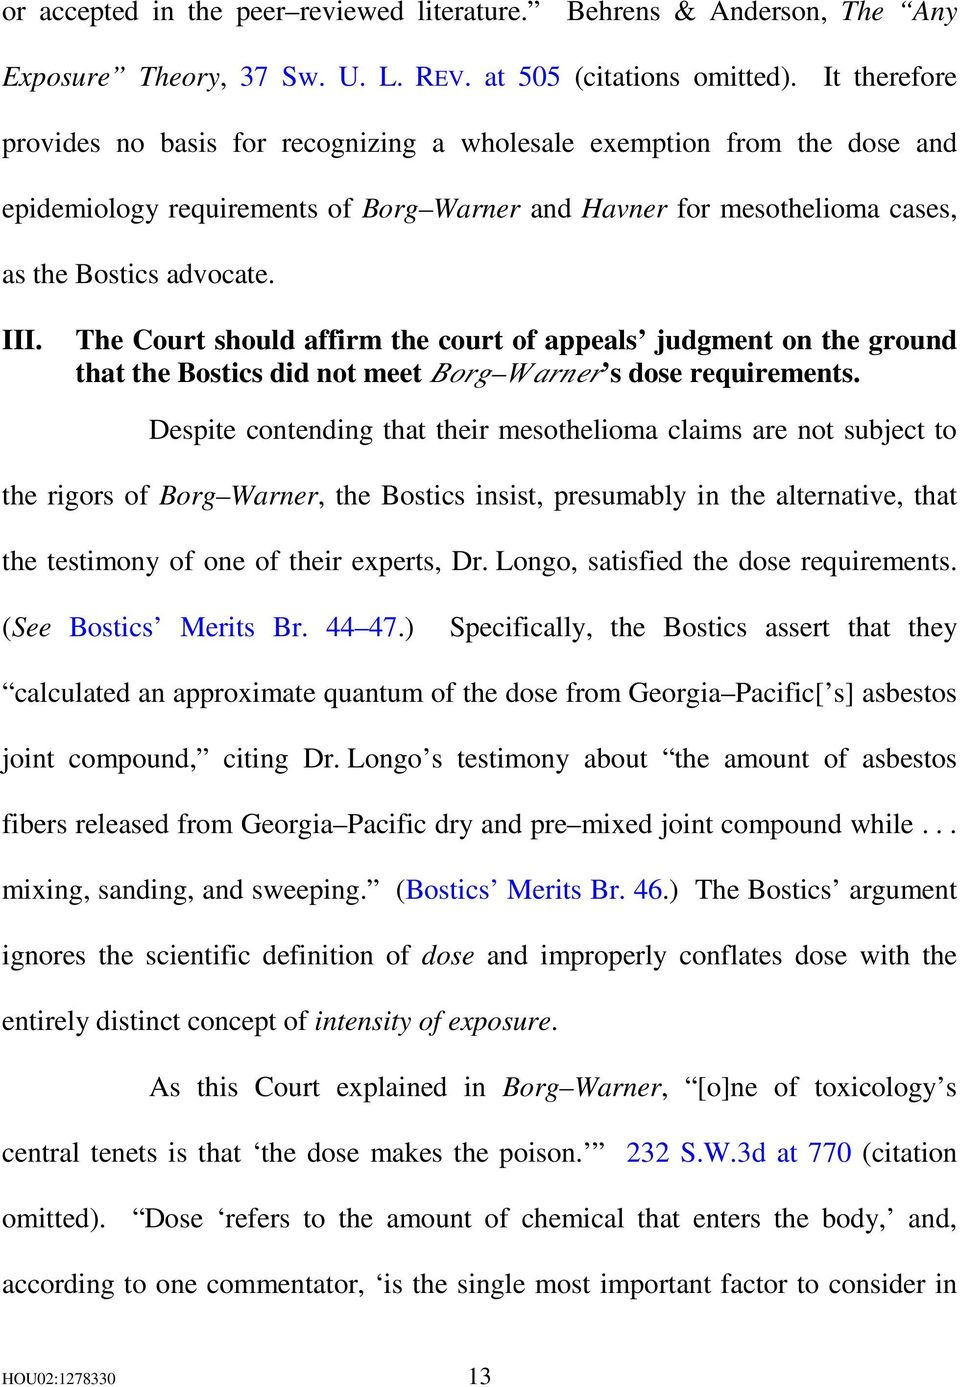 The Court should affirm the court of appeals judgment on the ground that the Bostics did not meet Borg W arner s dose requirements.